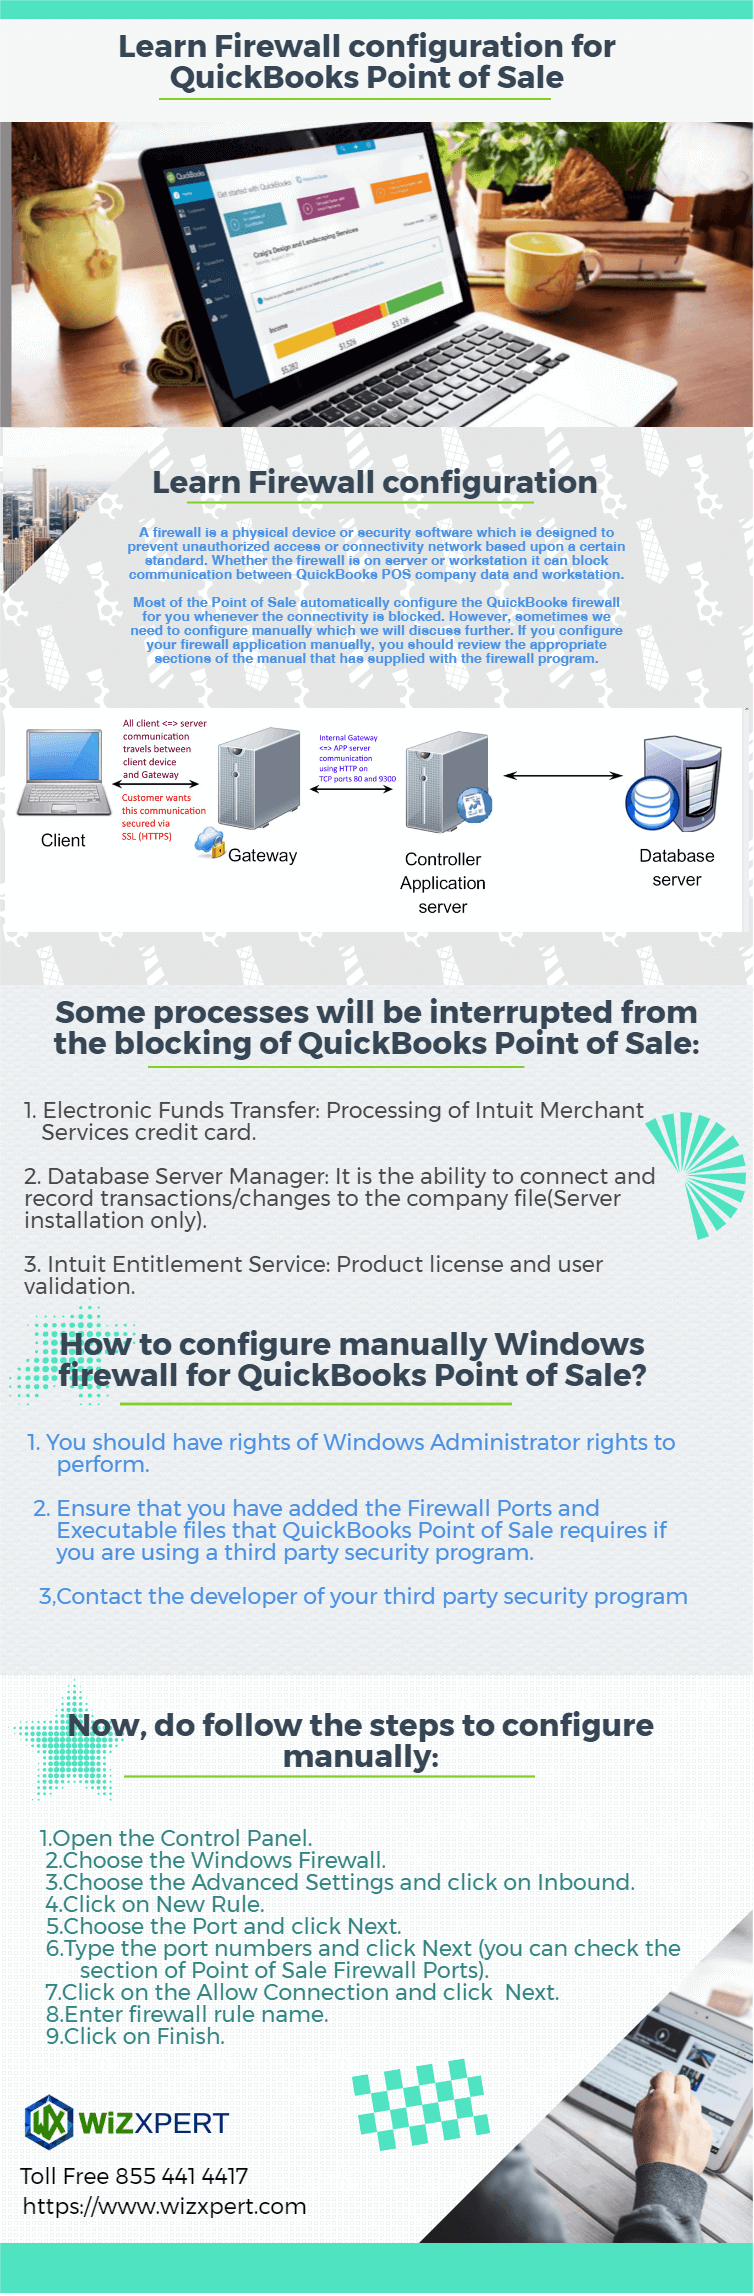 Learn Firewall Configuration for QuickBooks POS Infographic